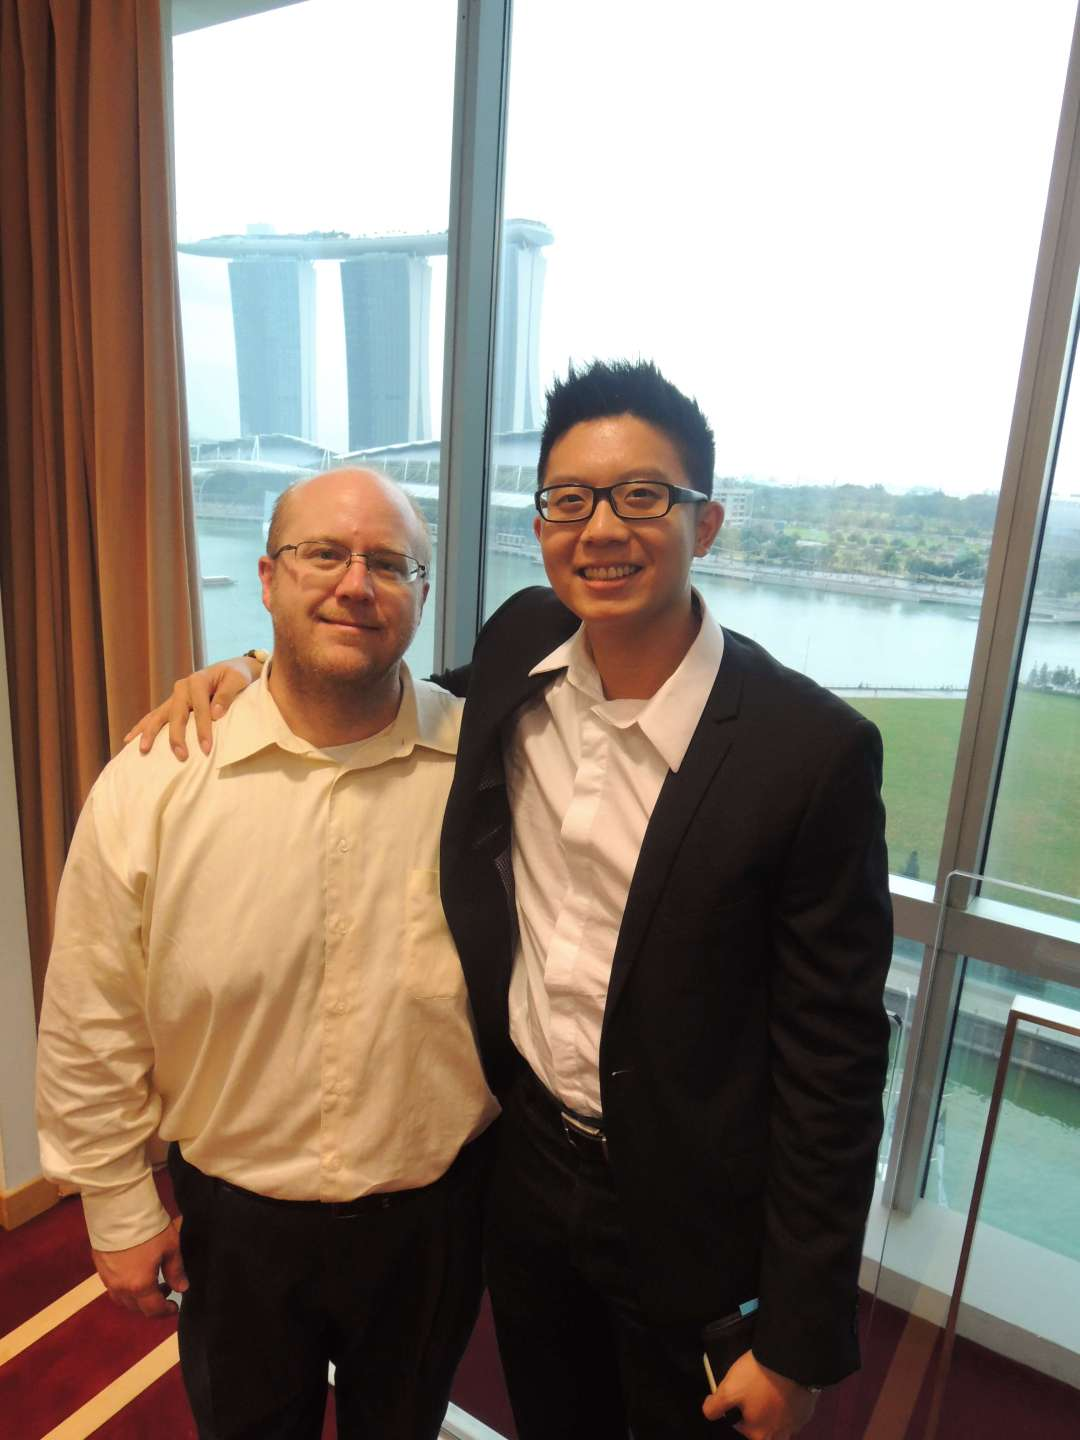 With Brian Schkeryantz, Gryphone Growth Group Managing Director